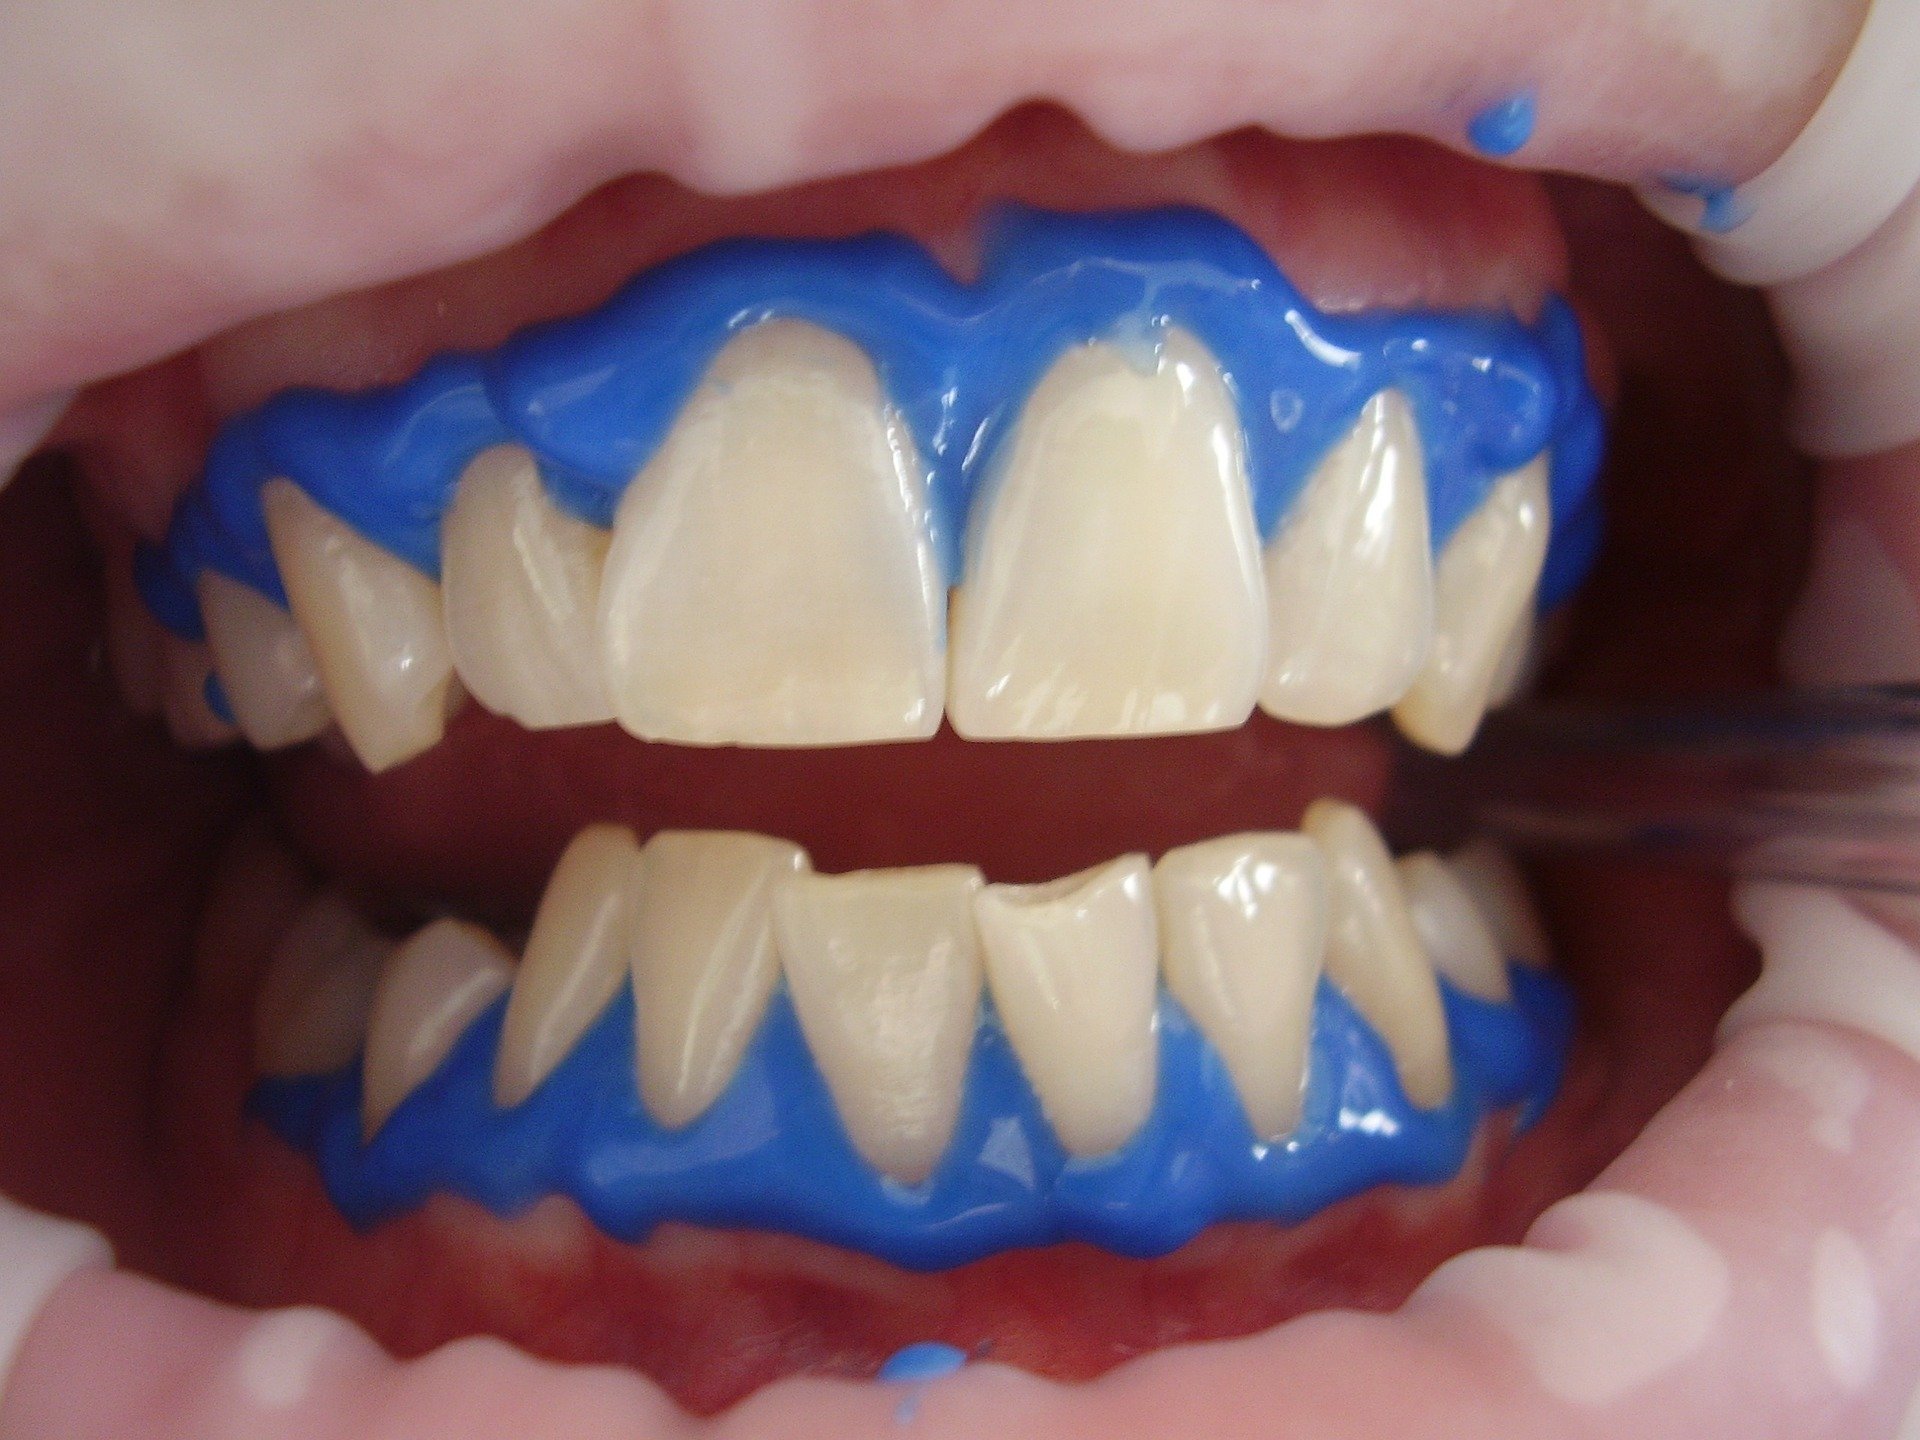 4 Amazing Benefits You Can Get With Laser Teeth Whitening